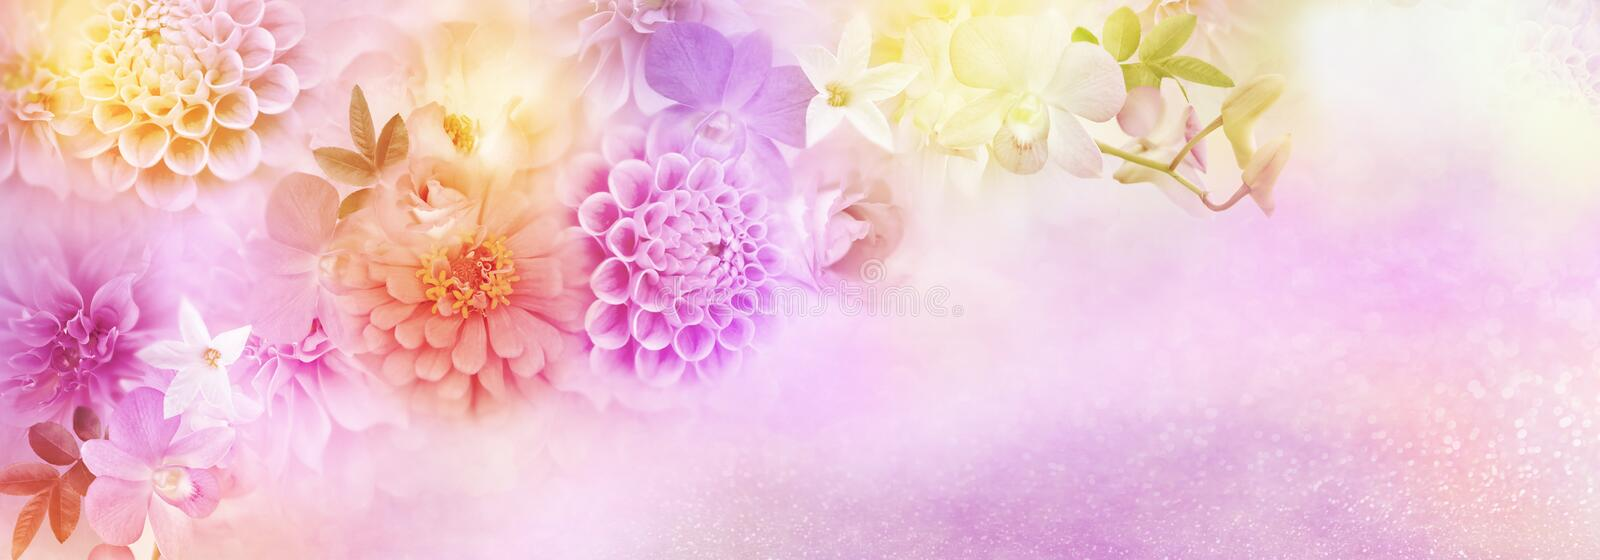 Beautiful romance dahlia, roses and orchid flowers border in colorful glitter background for header or banner royalty free illustration